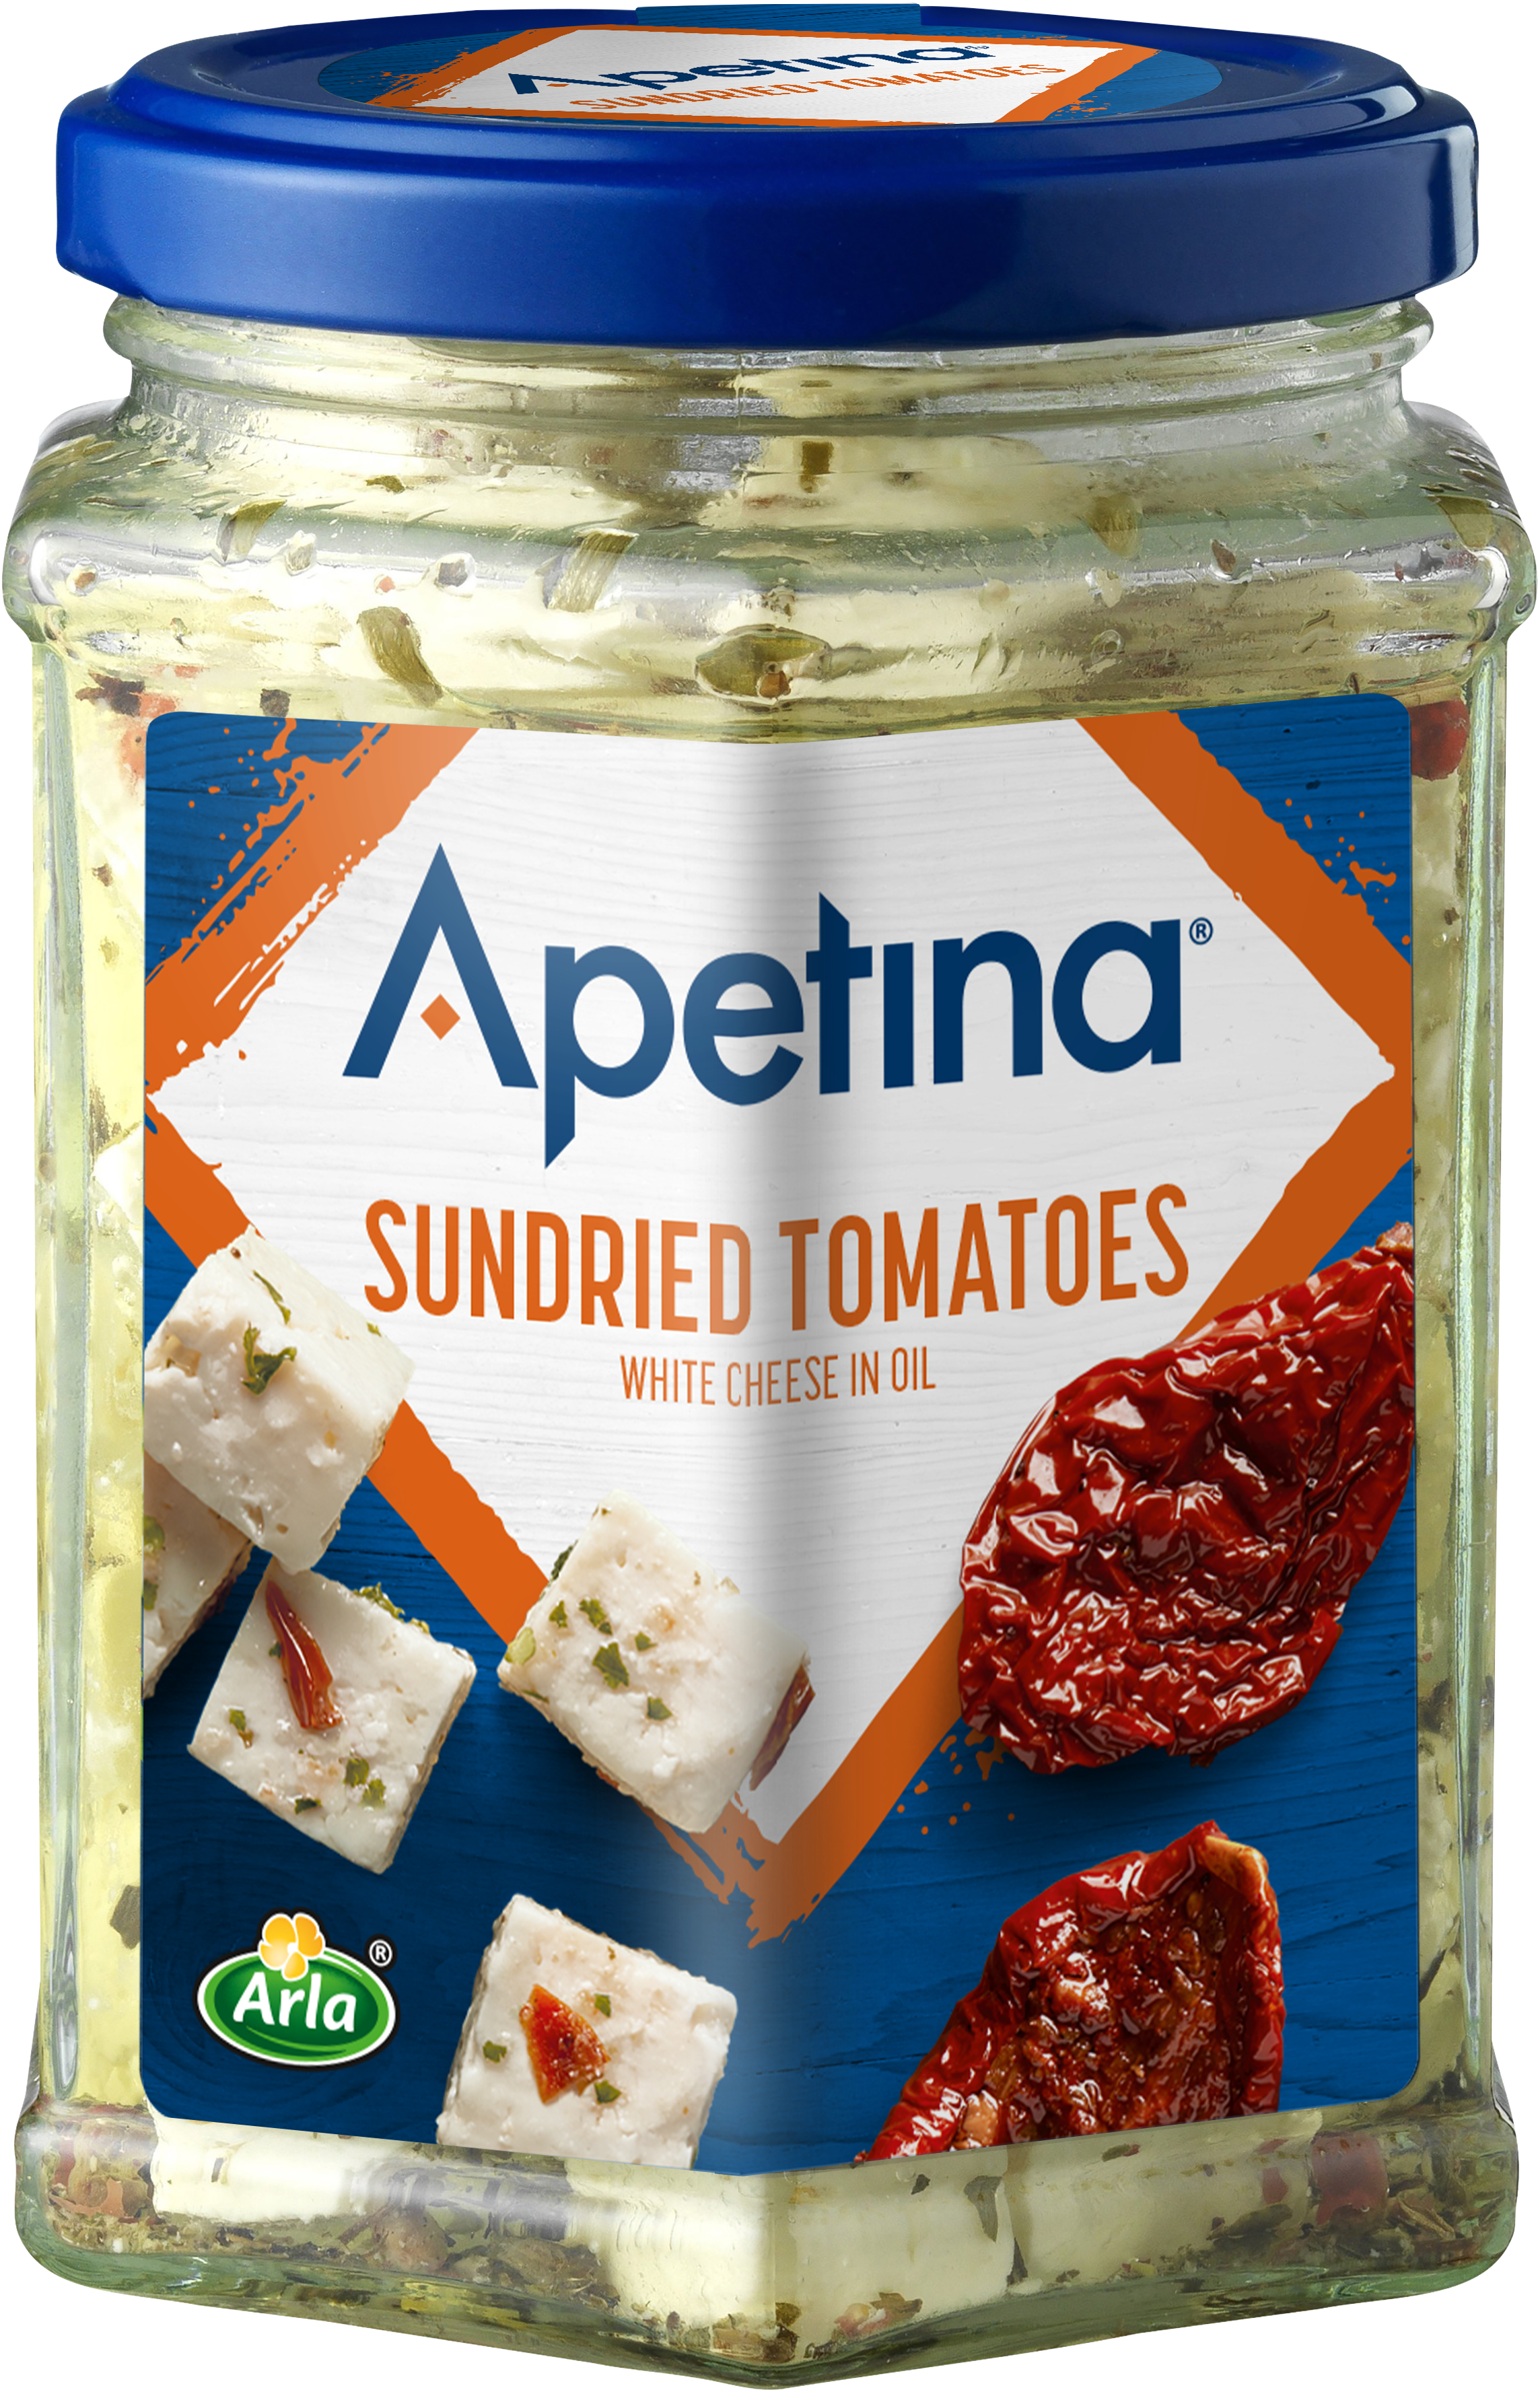 Apetina® Apetina white cheese cubes in oil Sundried Tomatoes 265g